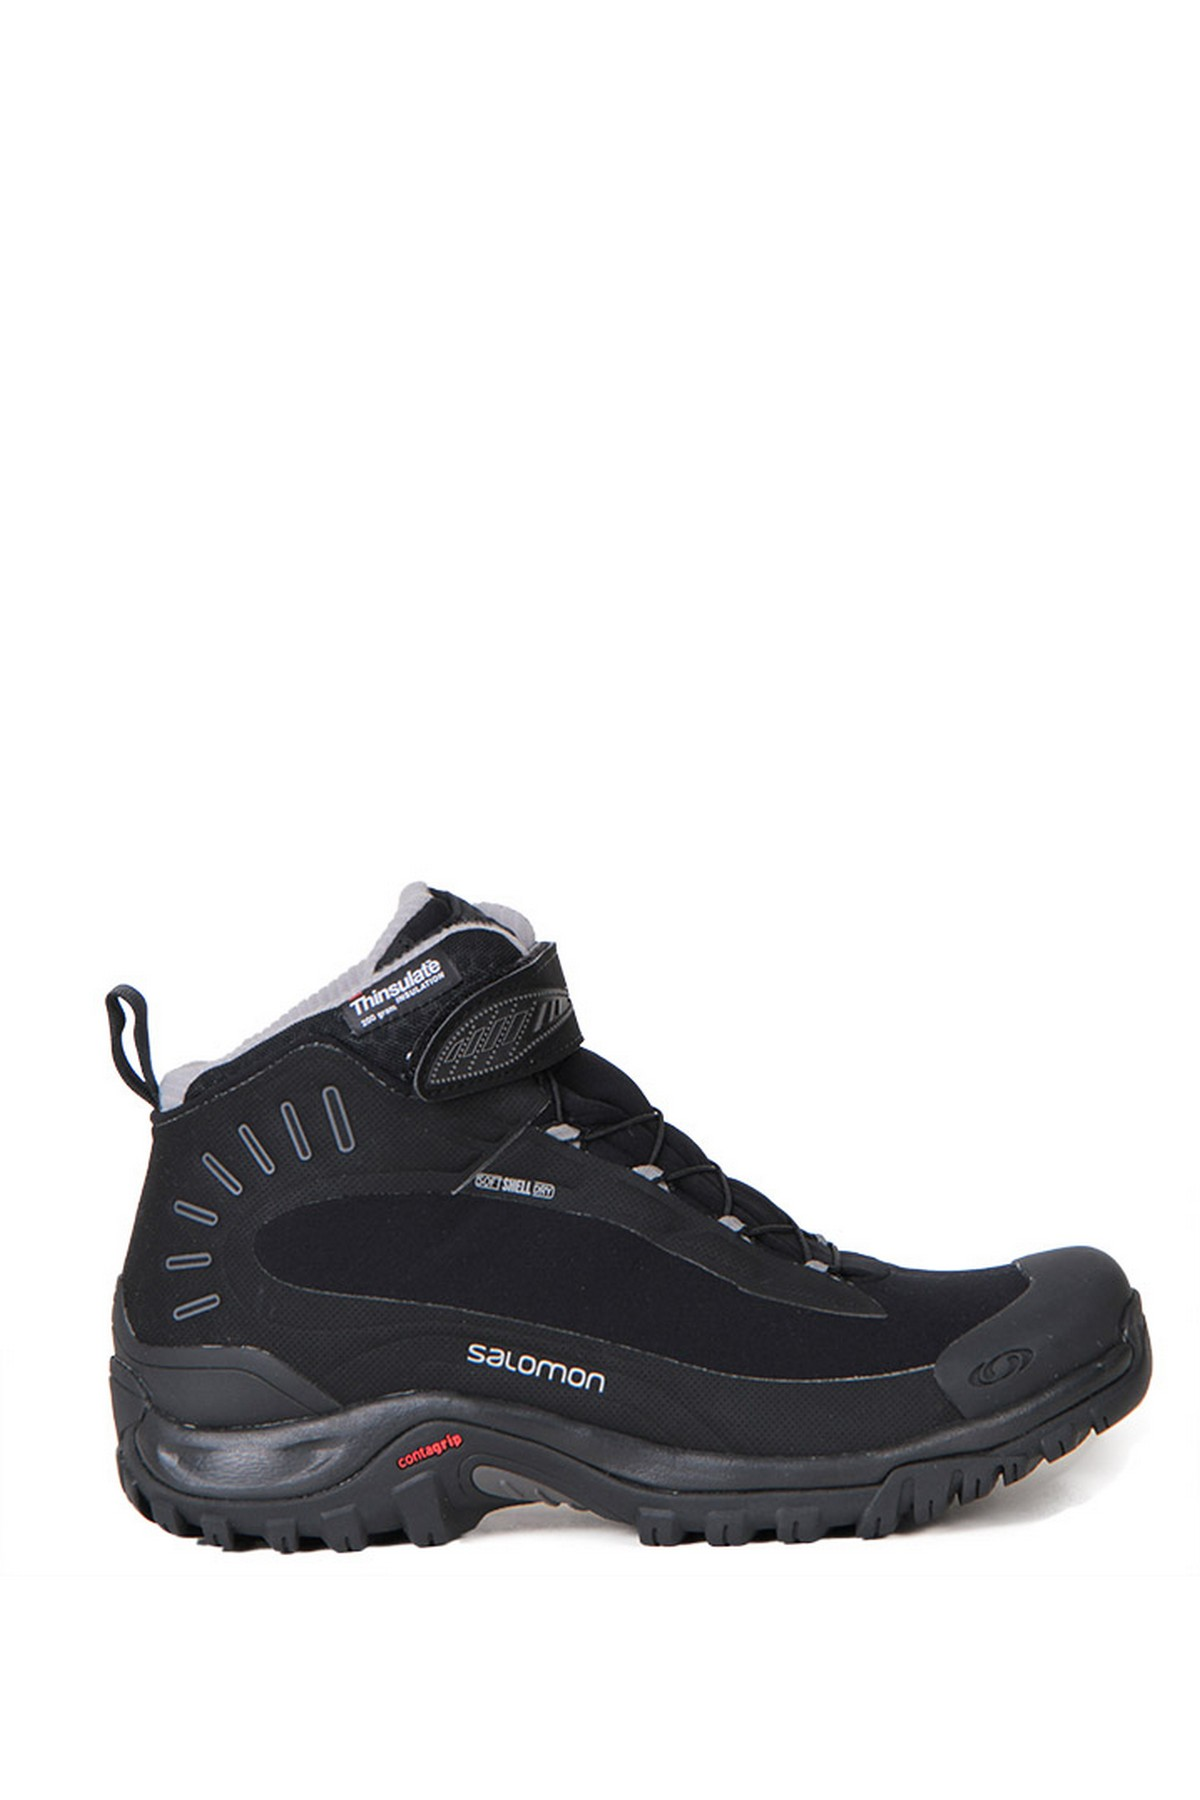 Salomon DEEMAX 3 TS WP (L37687800)